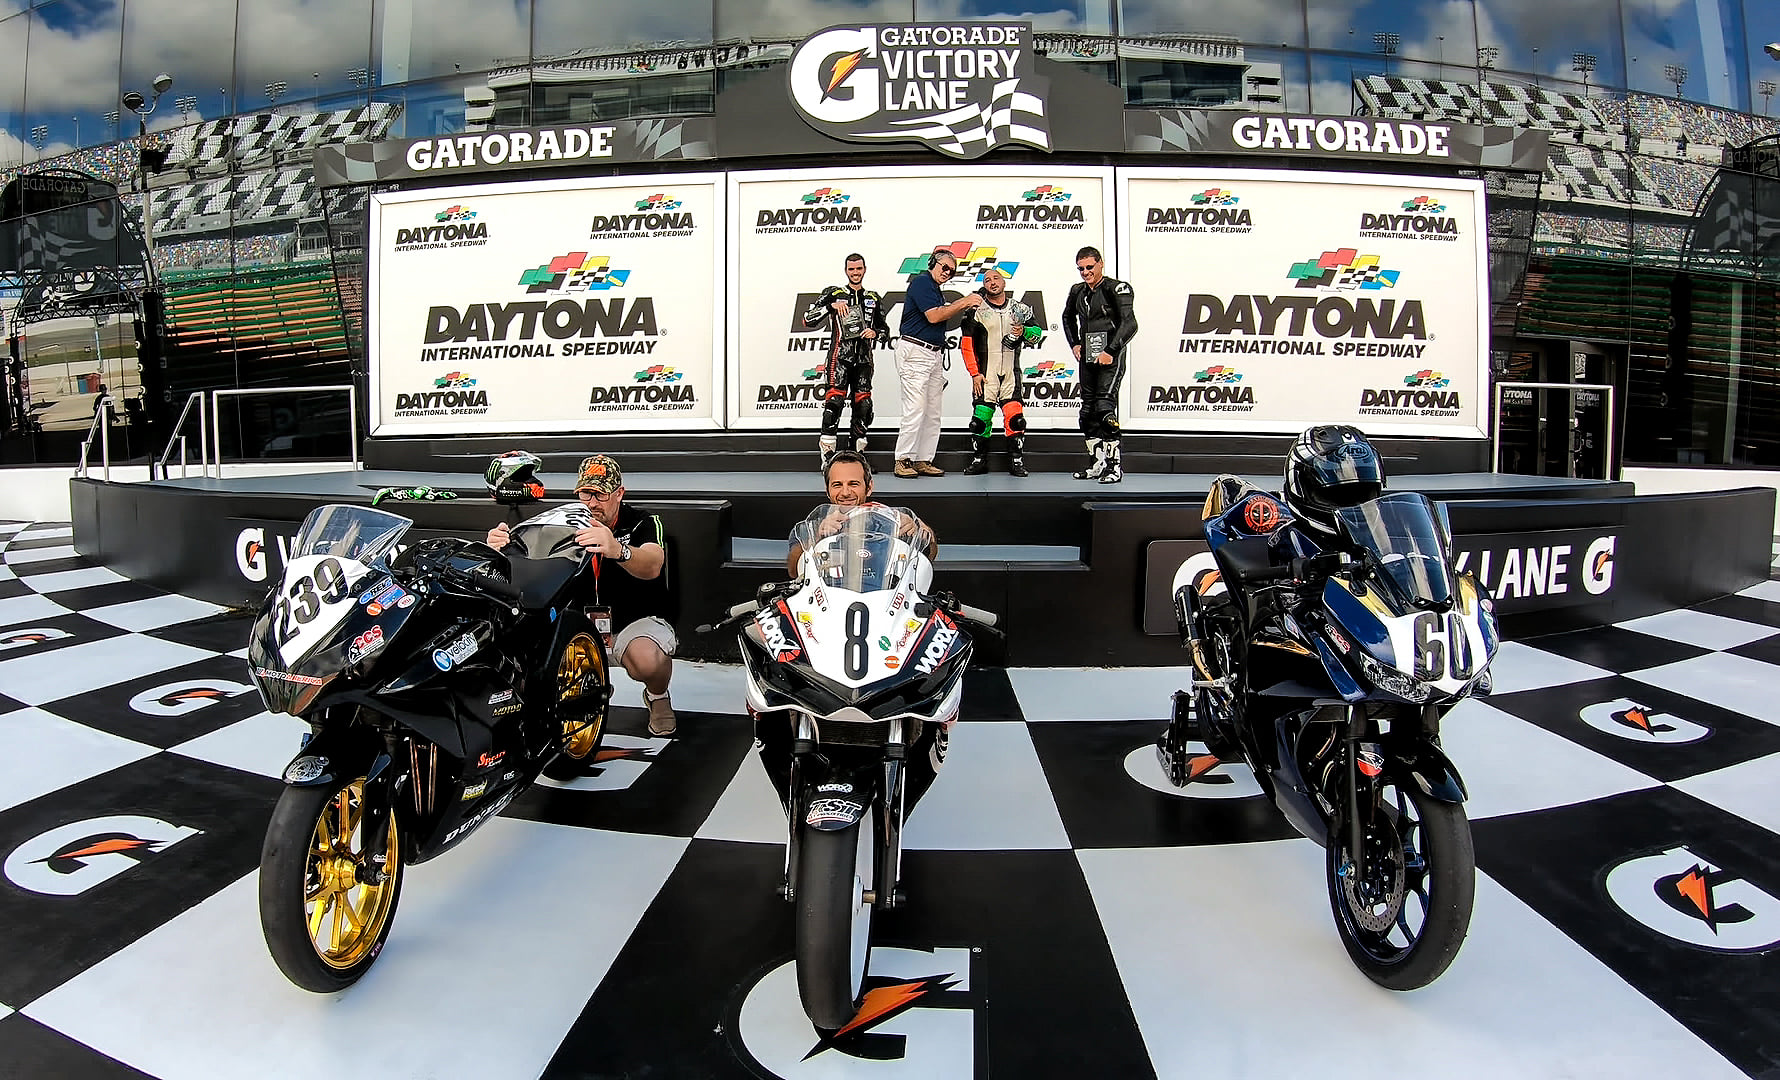 https://tstindustries.com/blog/wp-content/uploads/2019/10/TST-Industries-Moto3-Yamaha-R3-Superbike-National-Championship-Win_Image-8